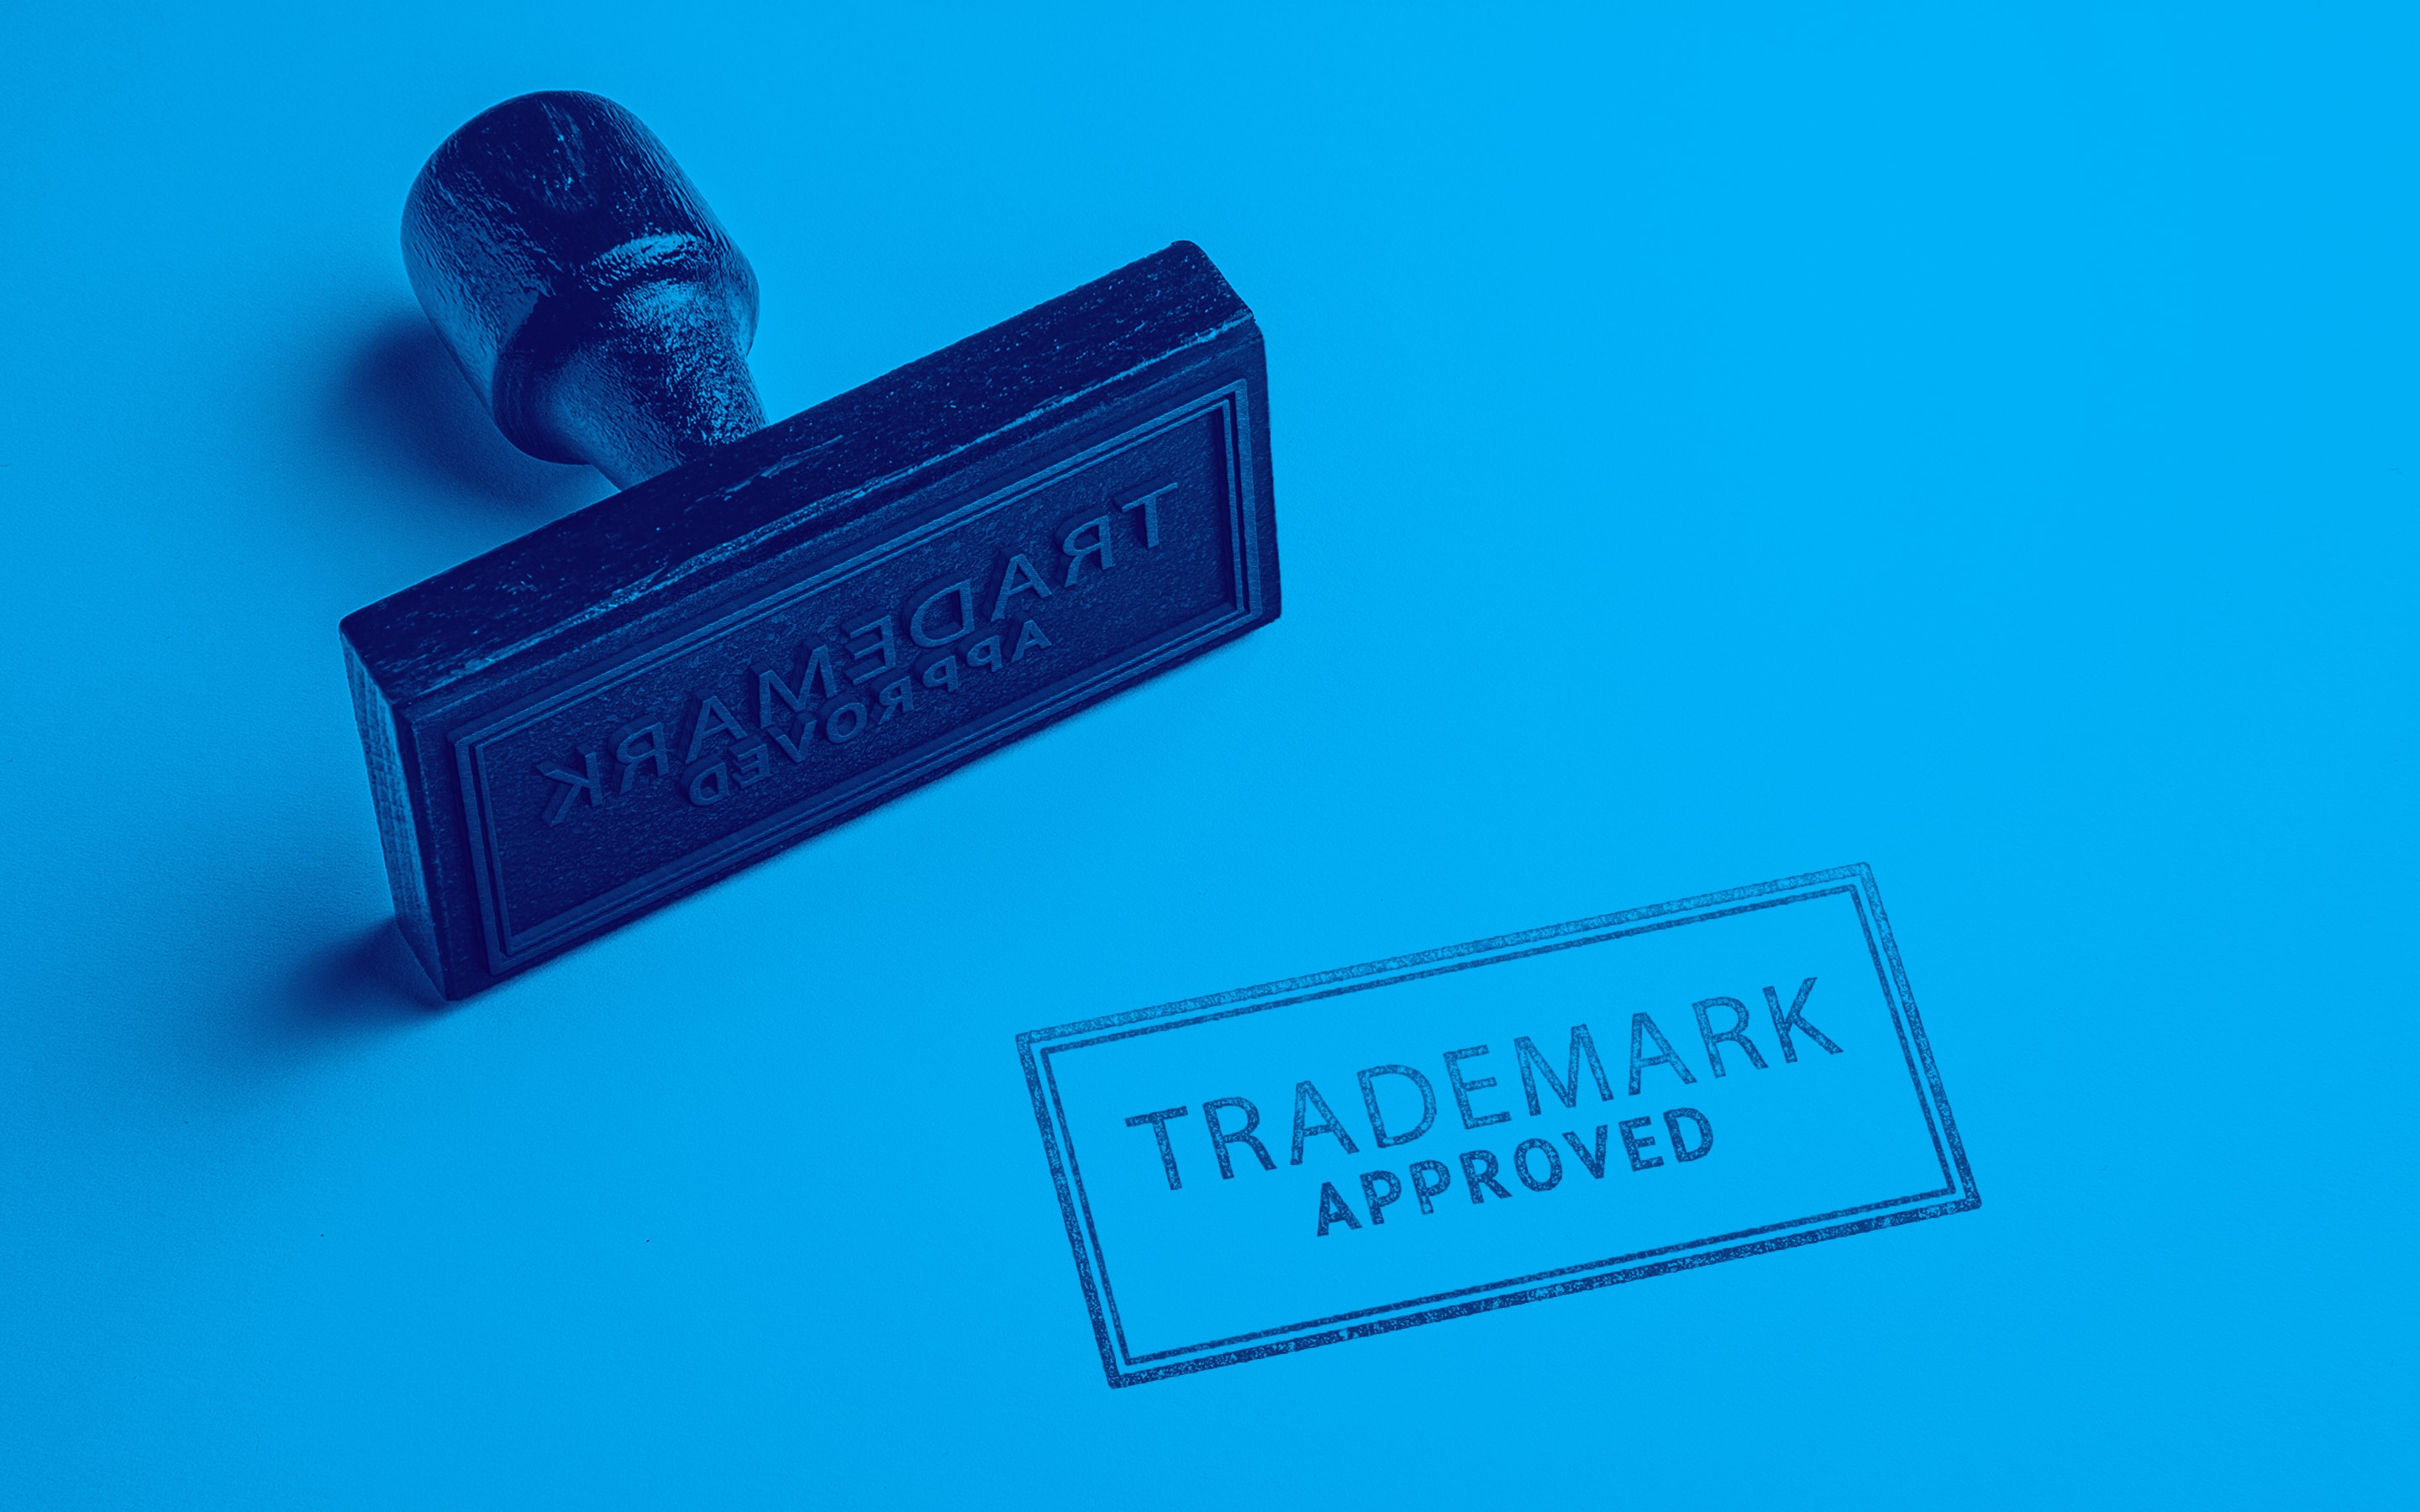 How To Trademark A Company Name